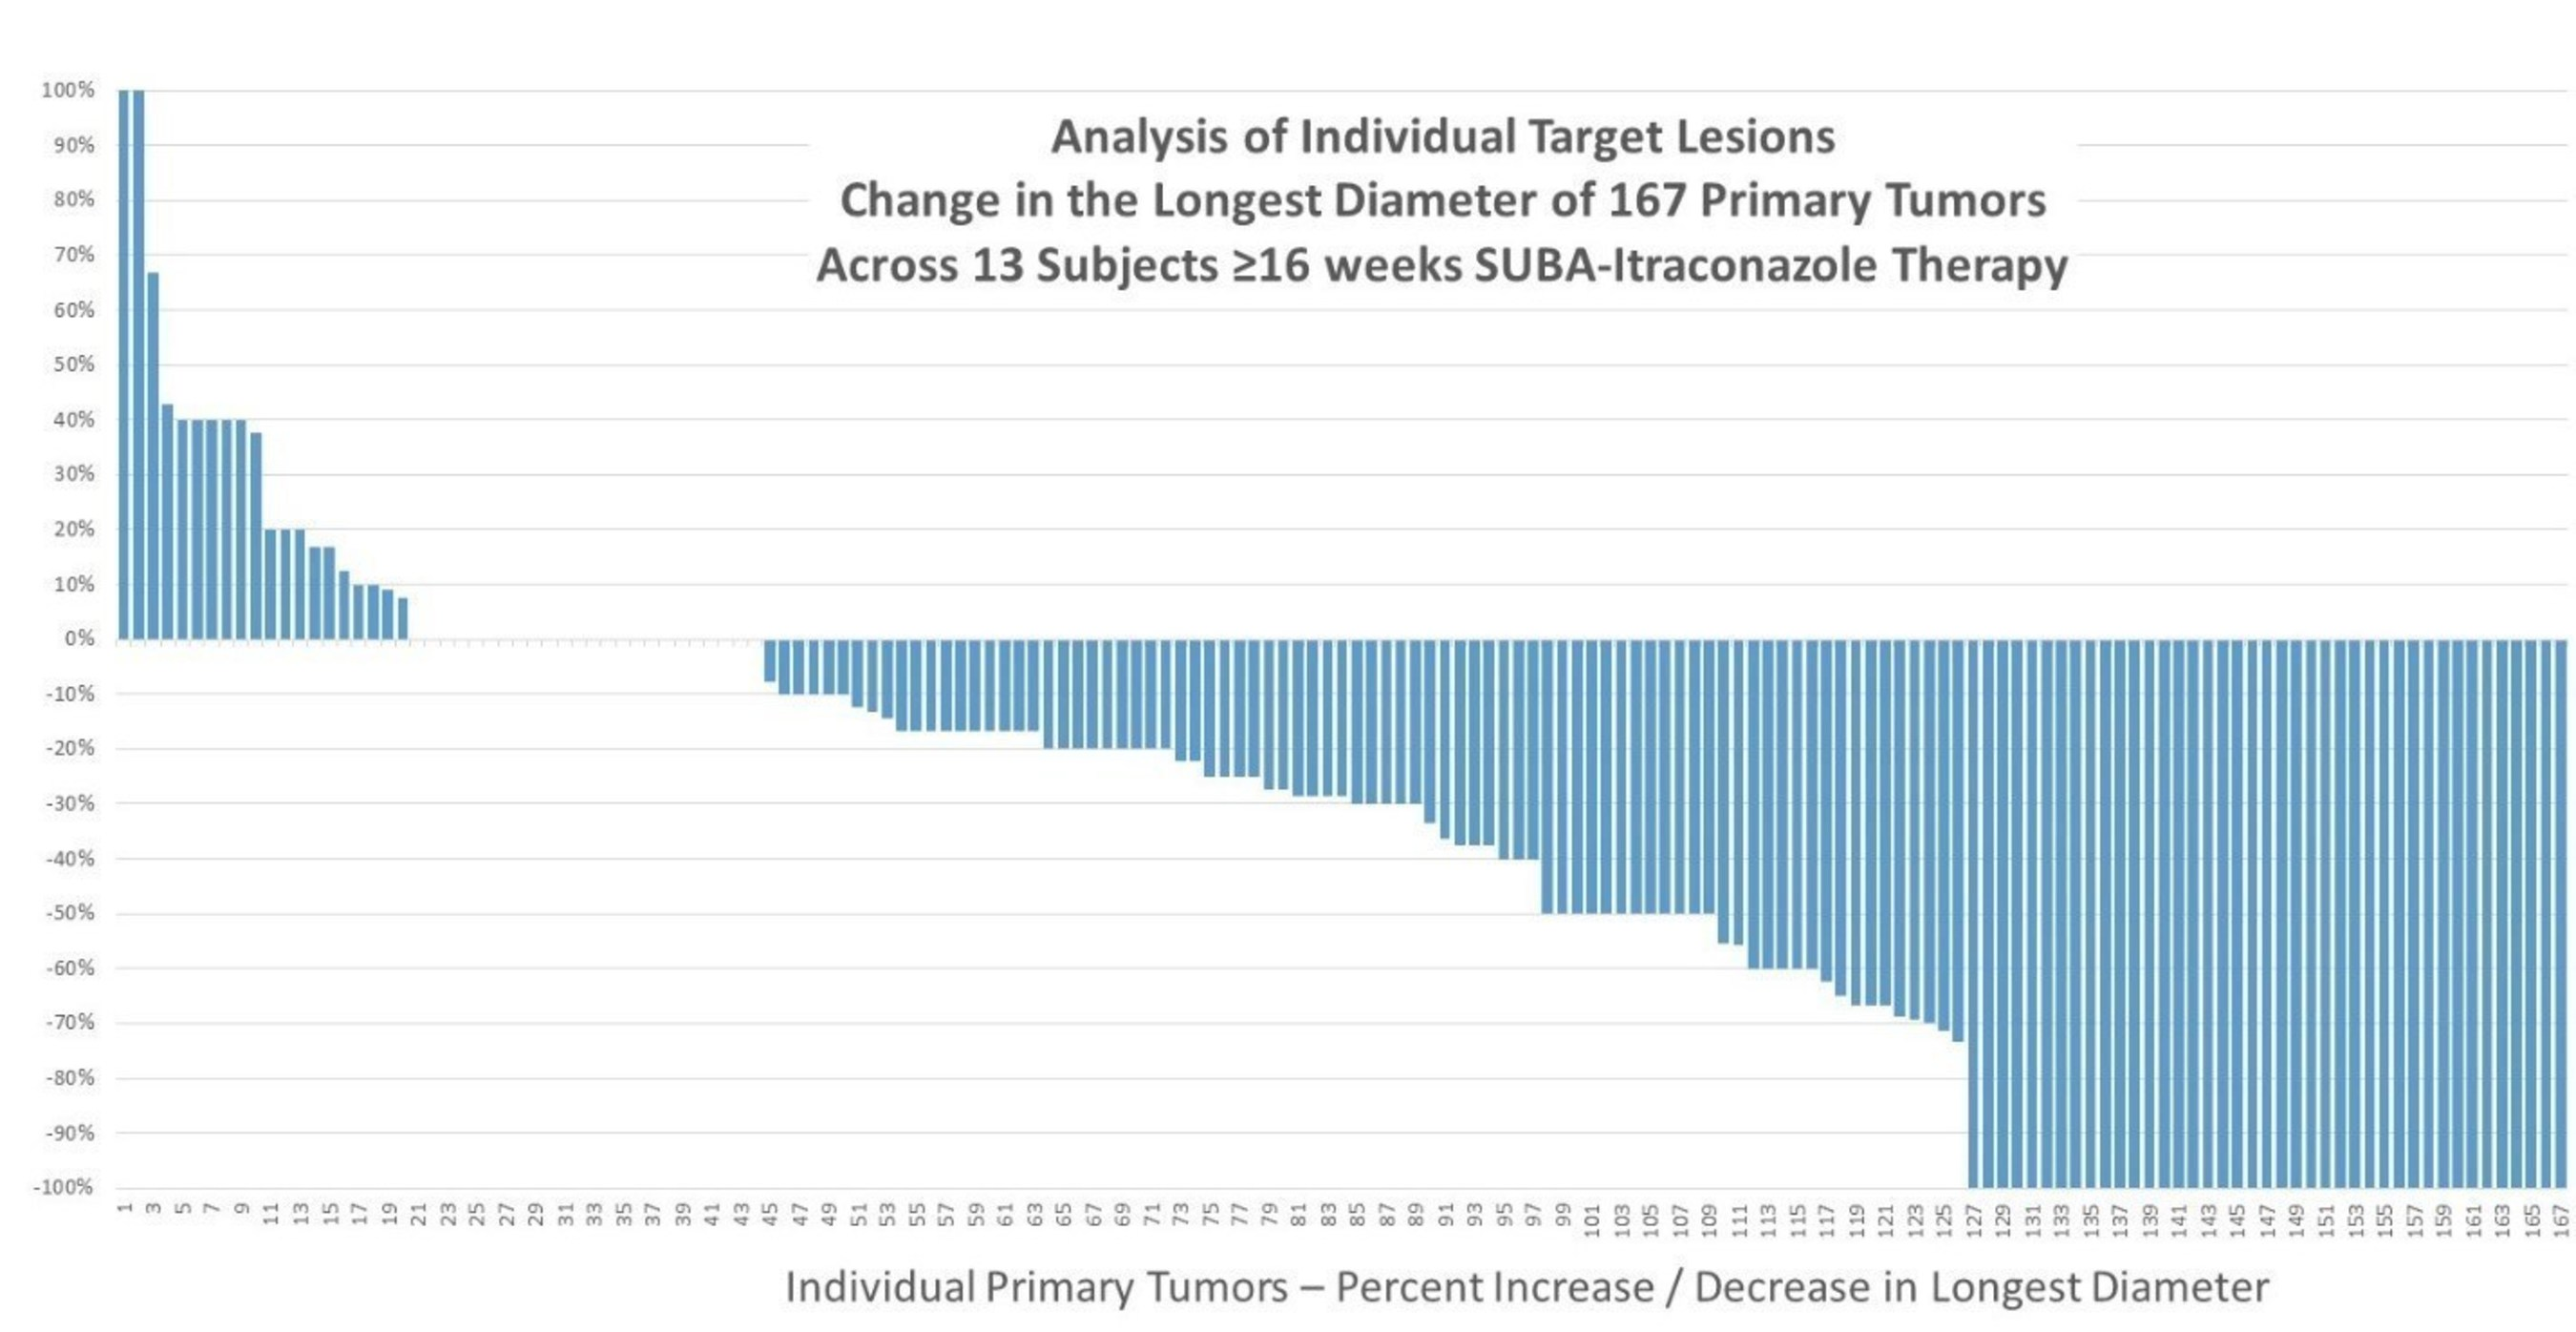 HedgePath Analysis of Individual Target Lesions